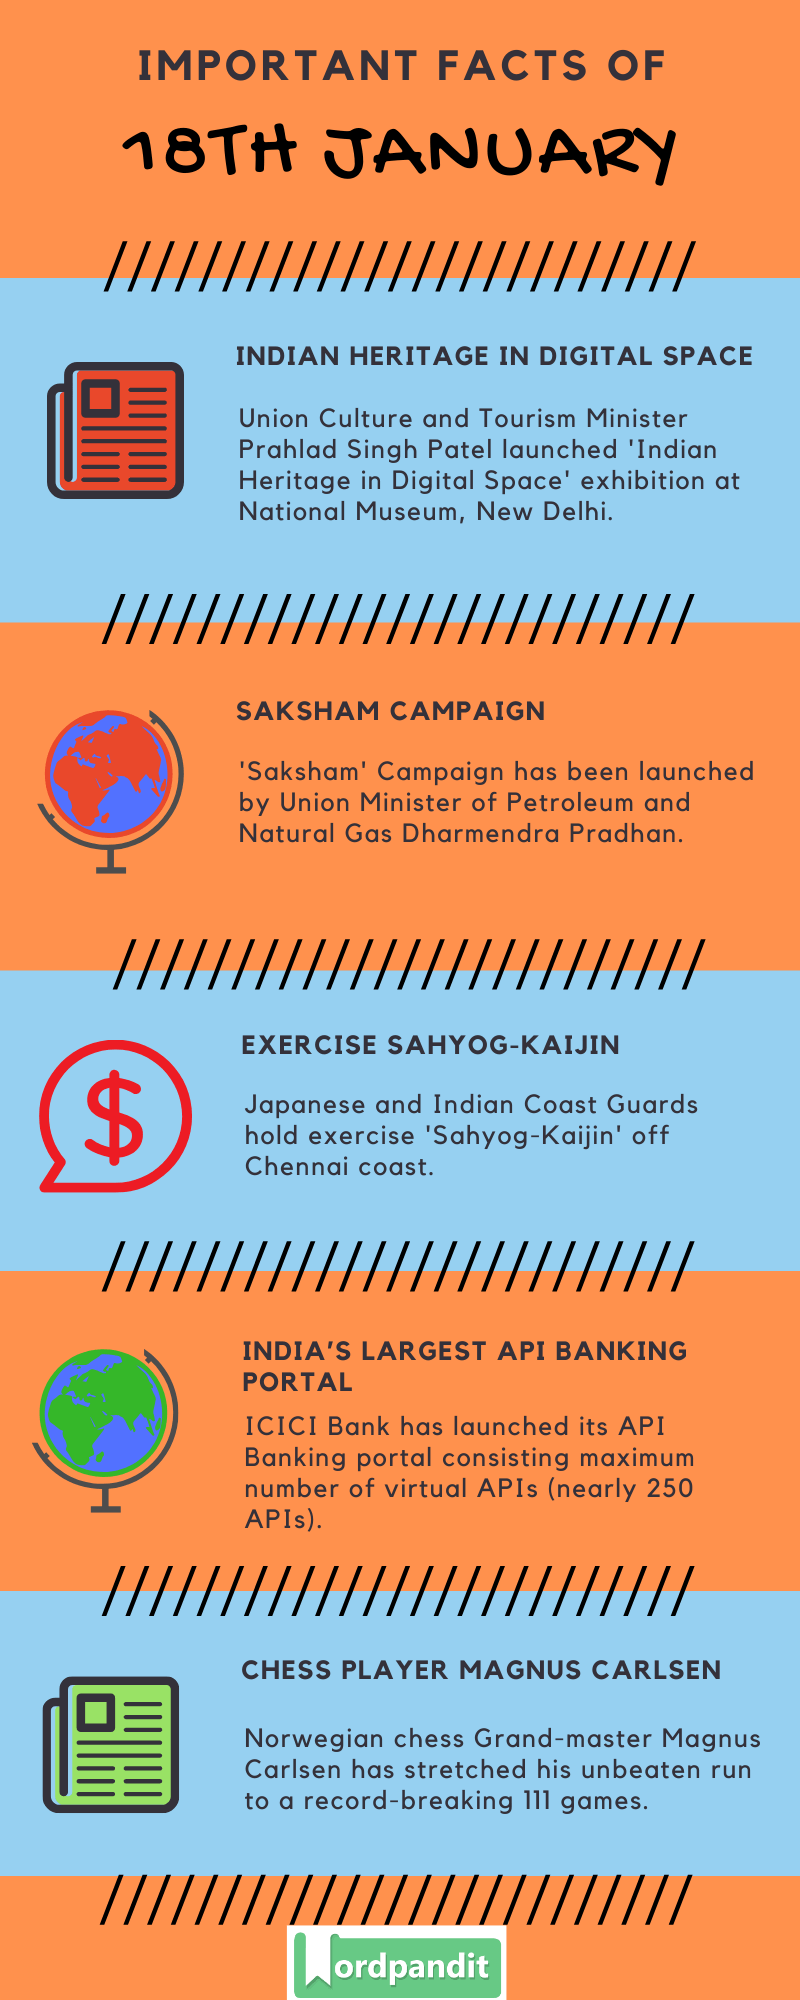 Daily Current Affairs 18 January 2020 Current Affairs Quiz 18 January 2020 Current Affairs Infographic